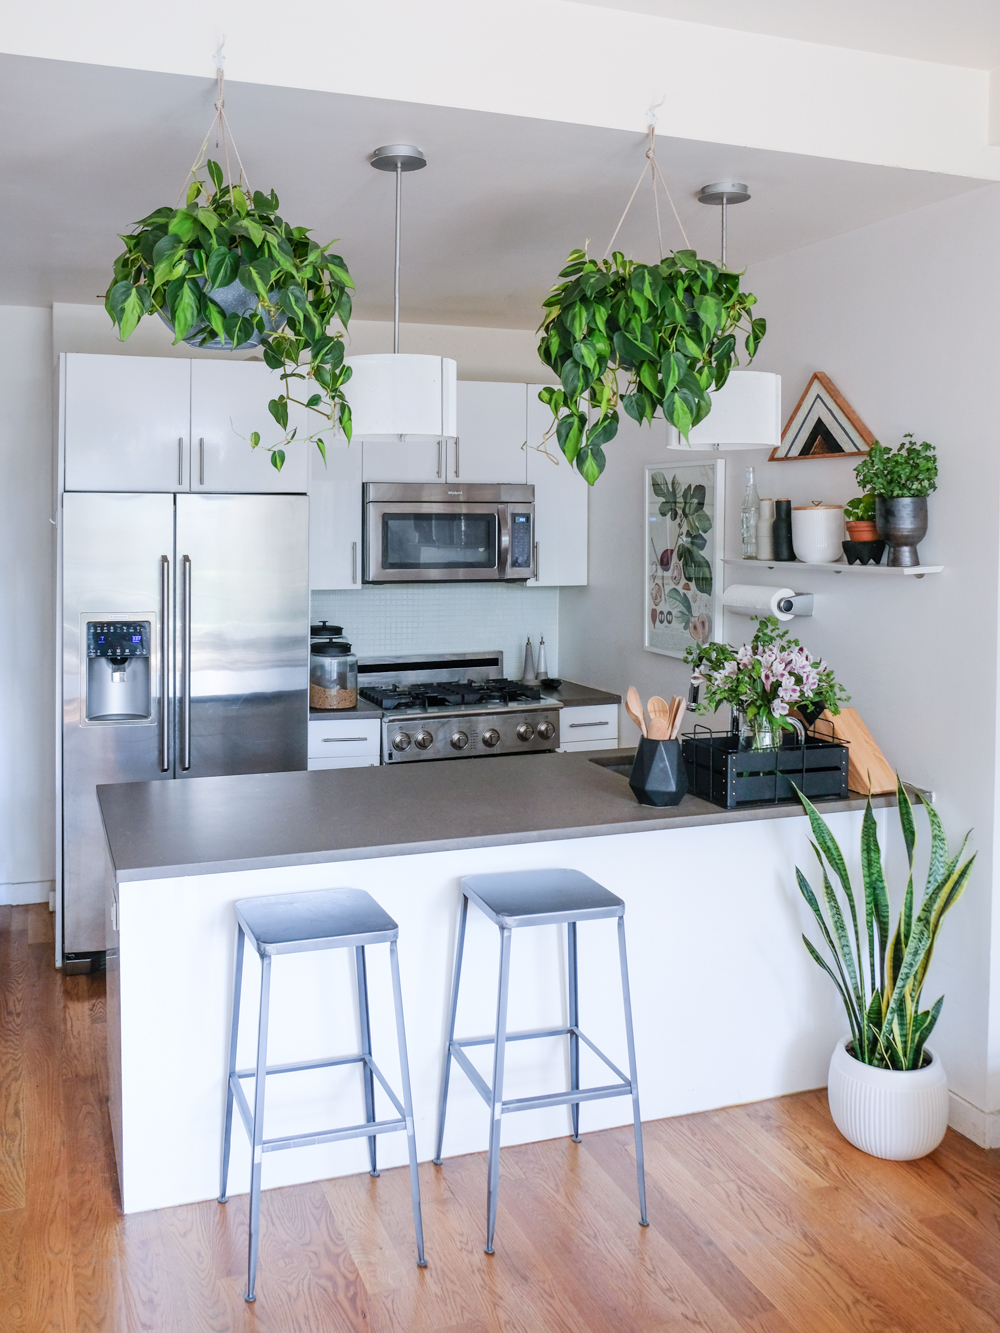 Even though it's not a big apartment, I really loved this kitchen and how open it is.